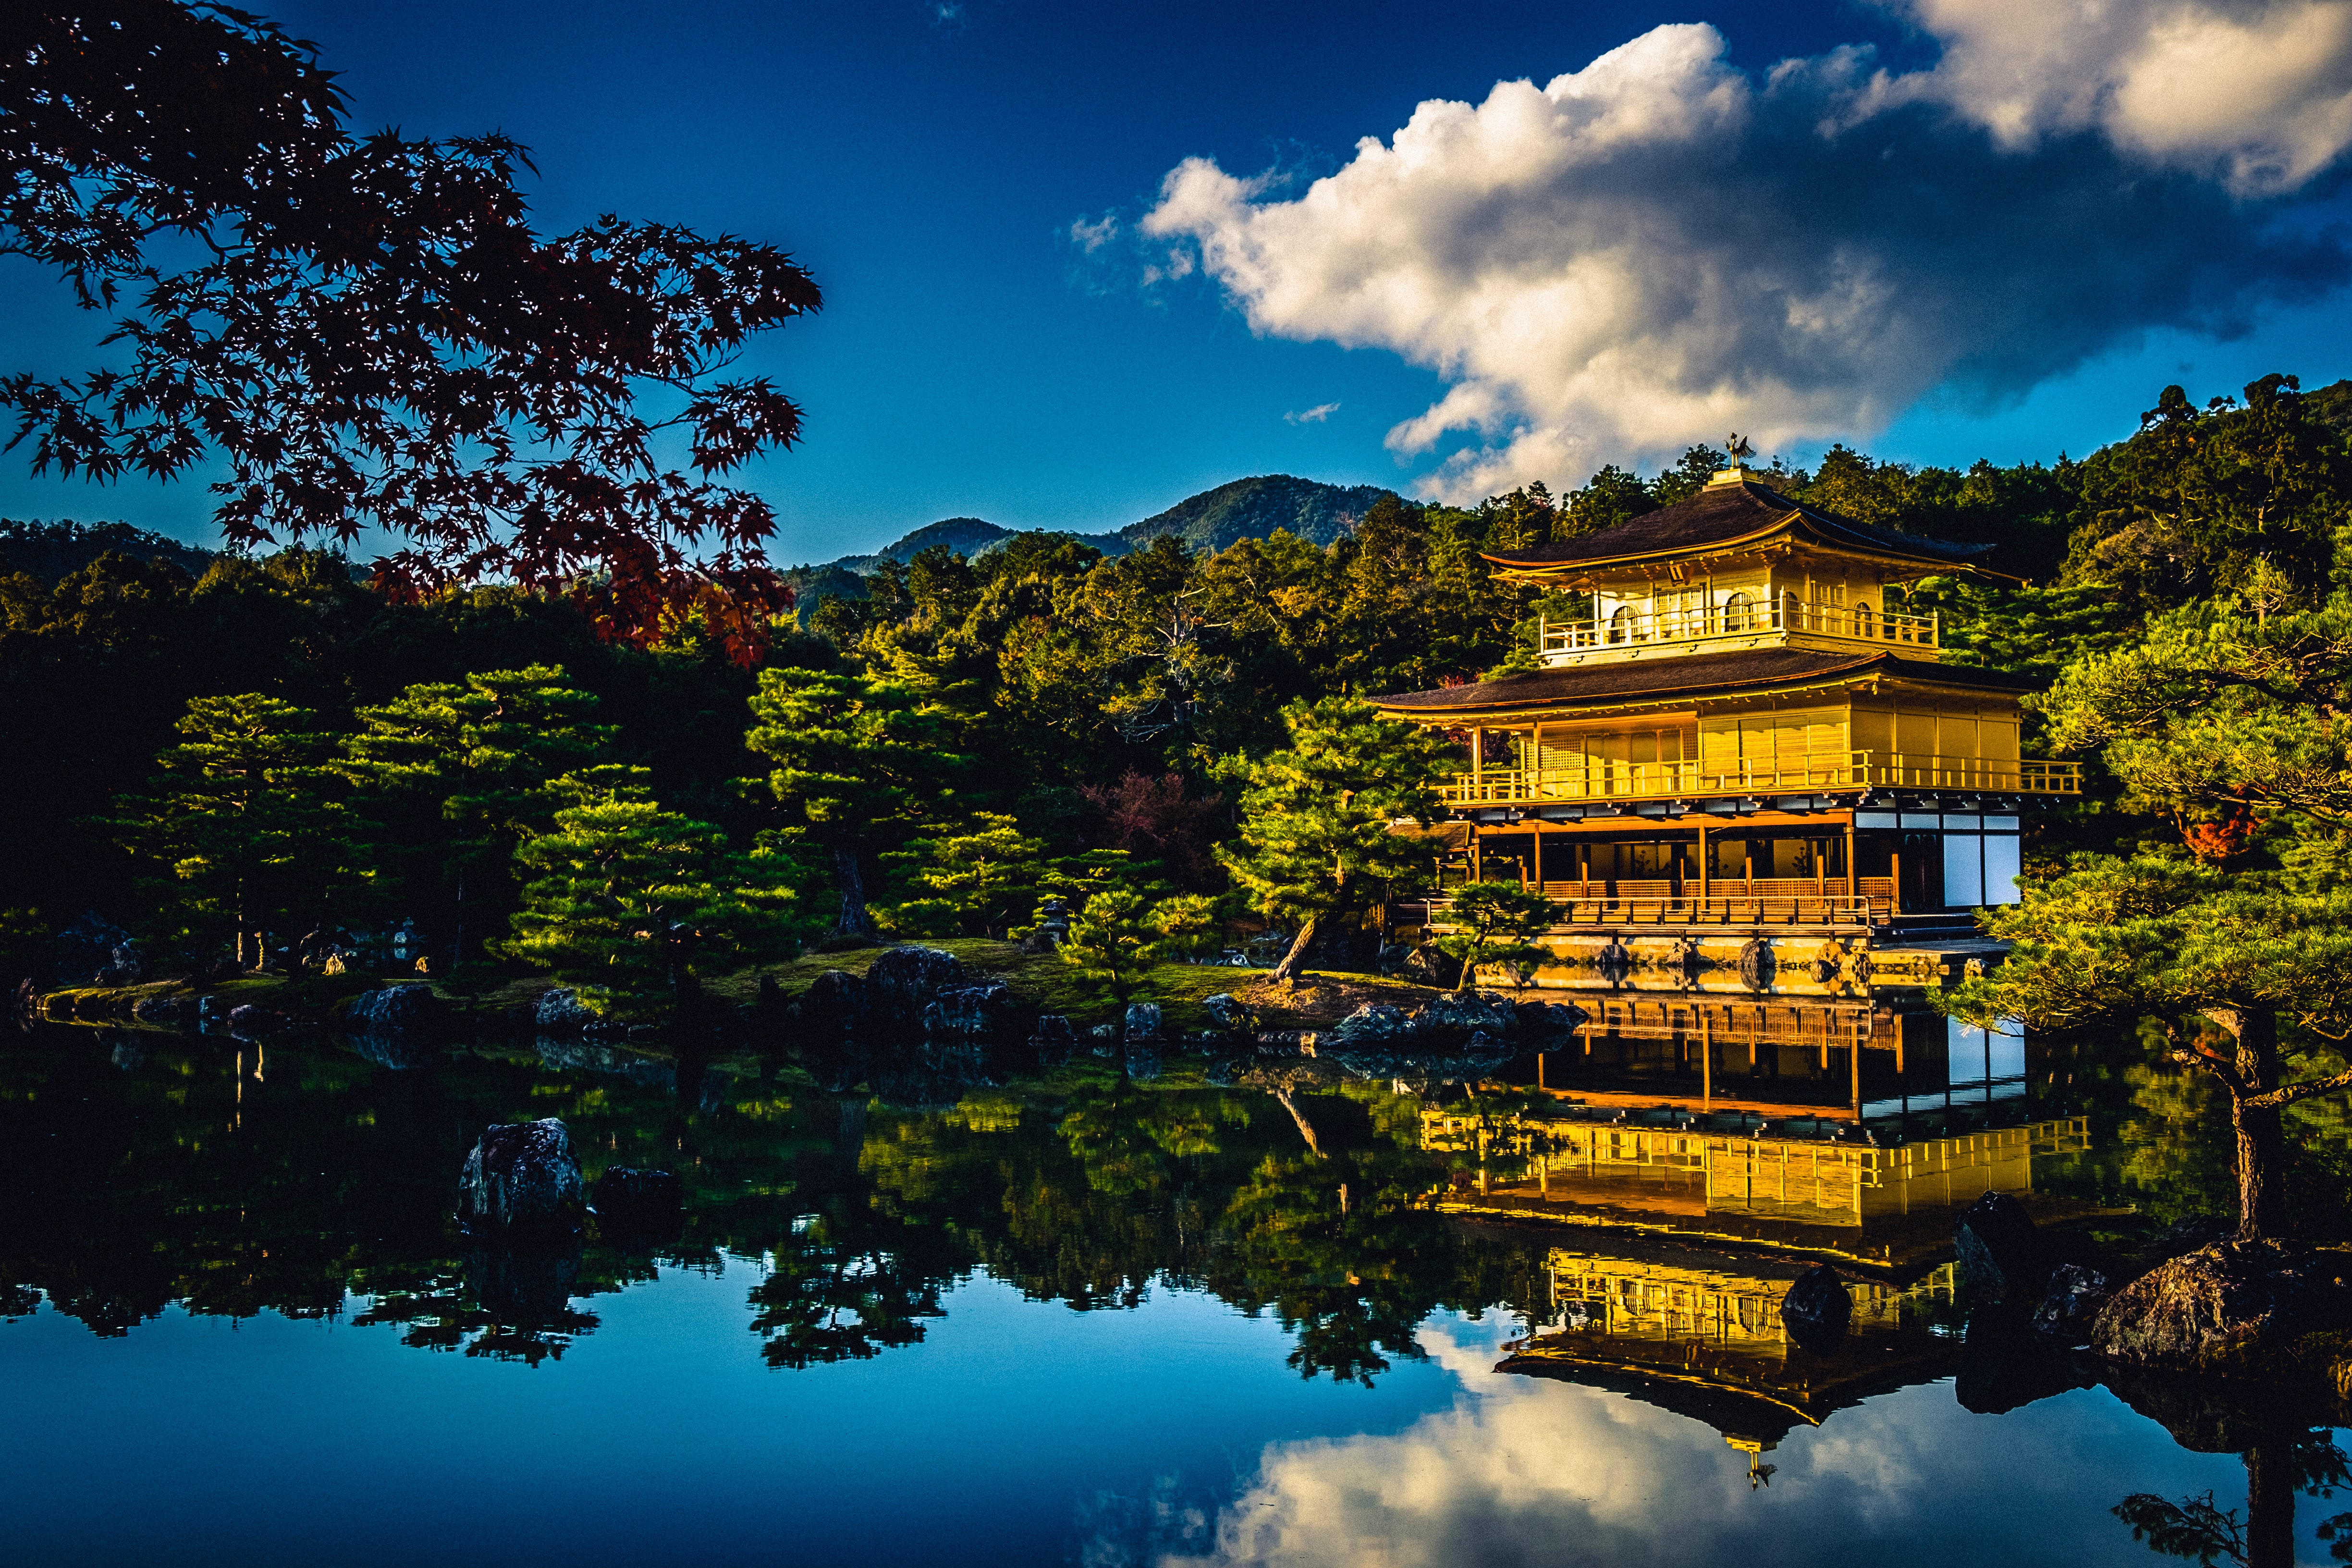 pagoda house near body of water during daytime